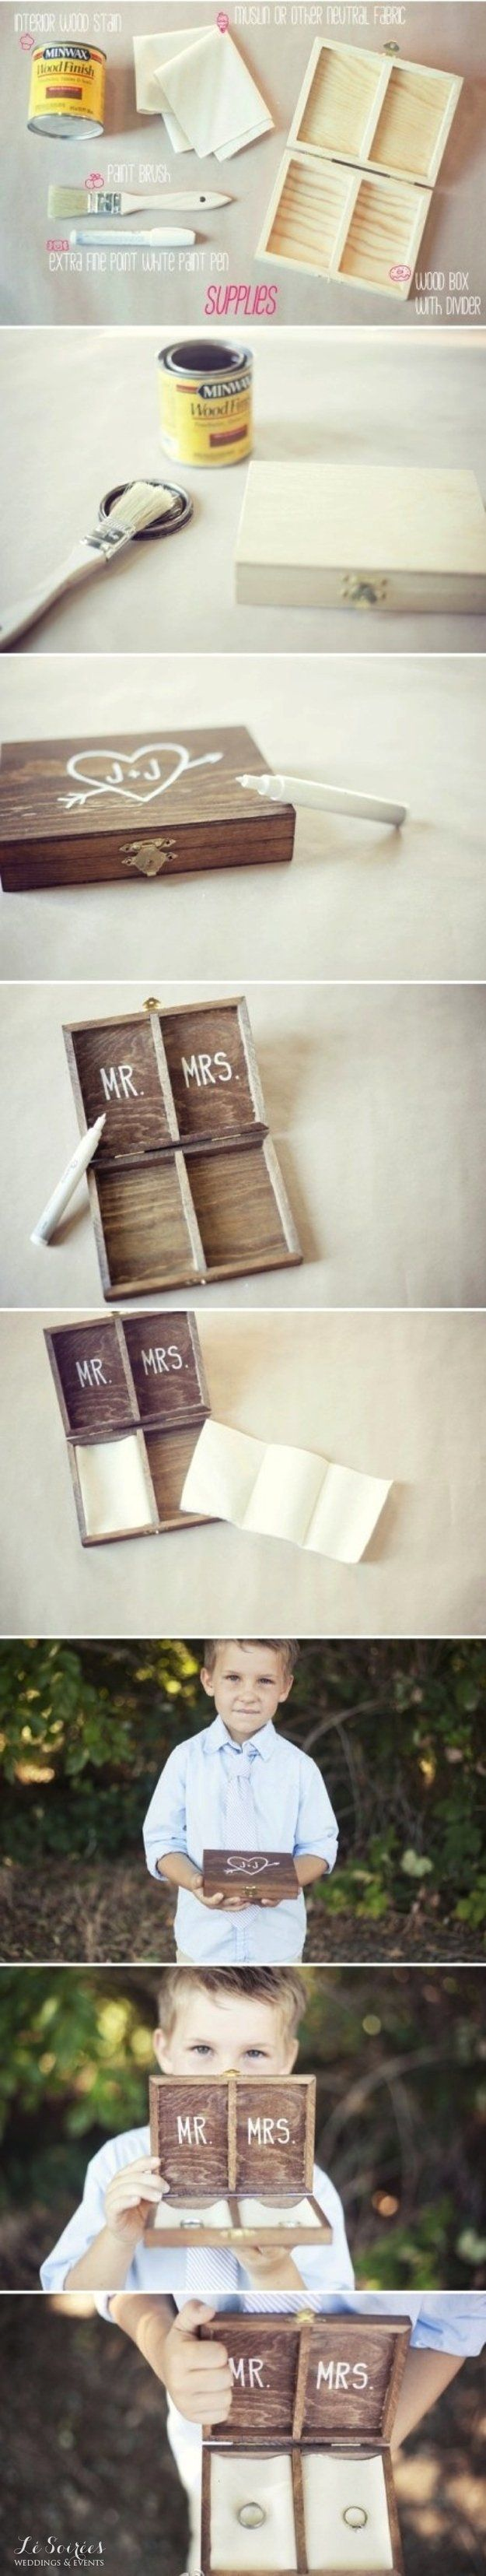 Ring bearer's box instead of a pillow!...cute for pics even if you don't have a ring bearer!